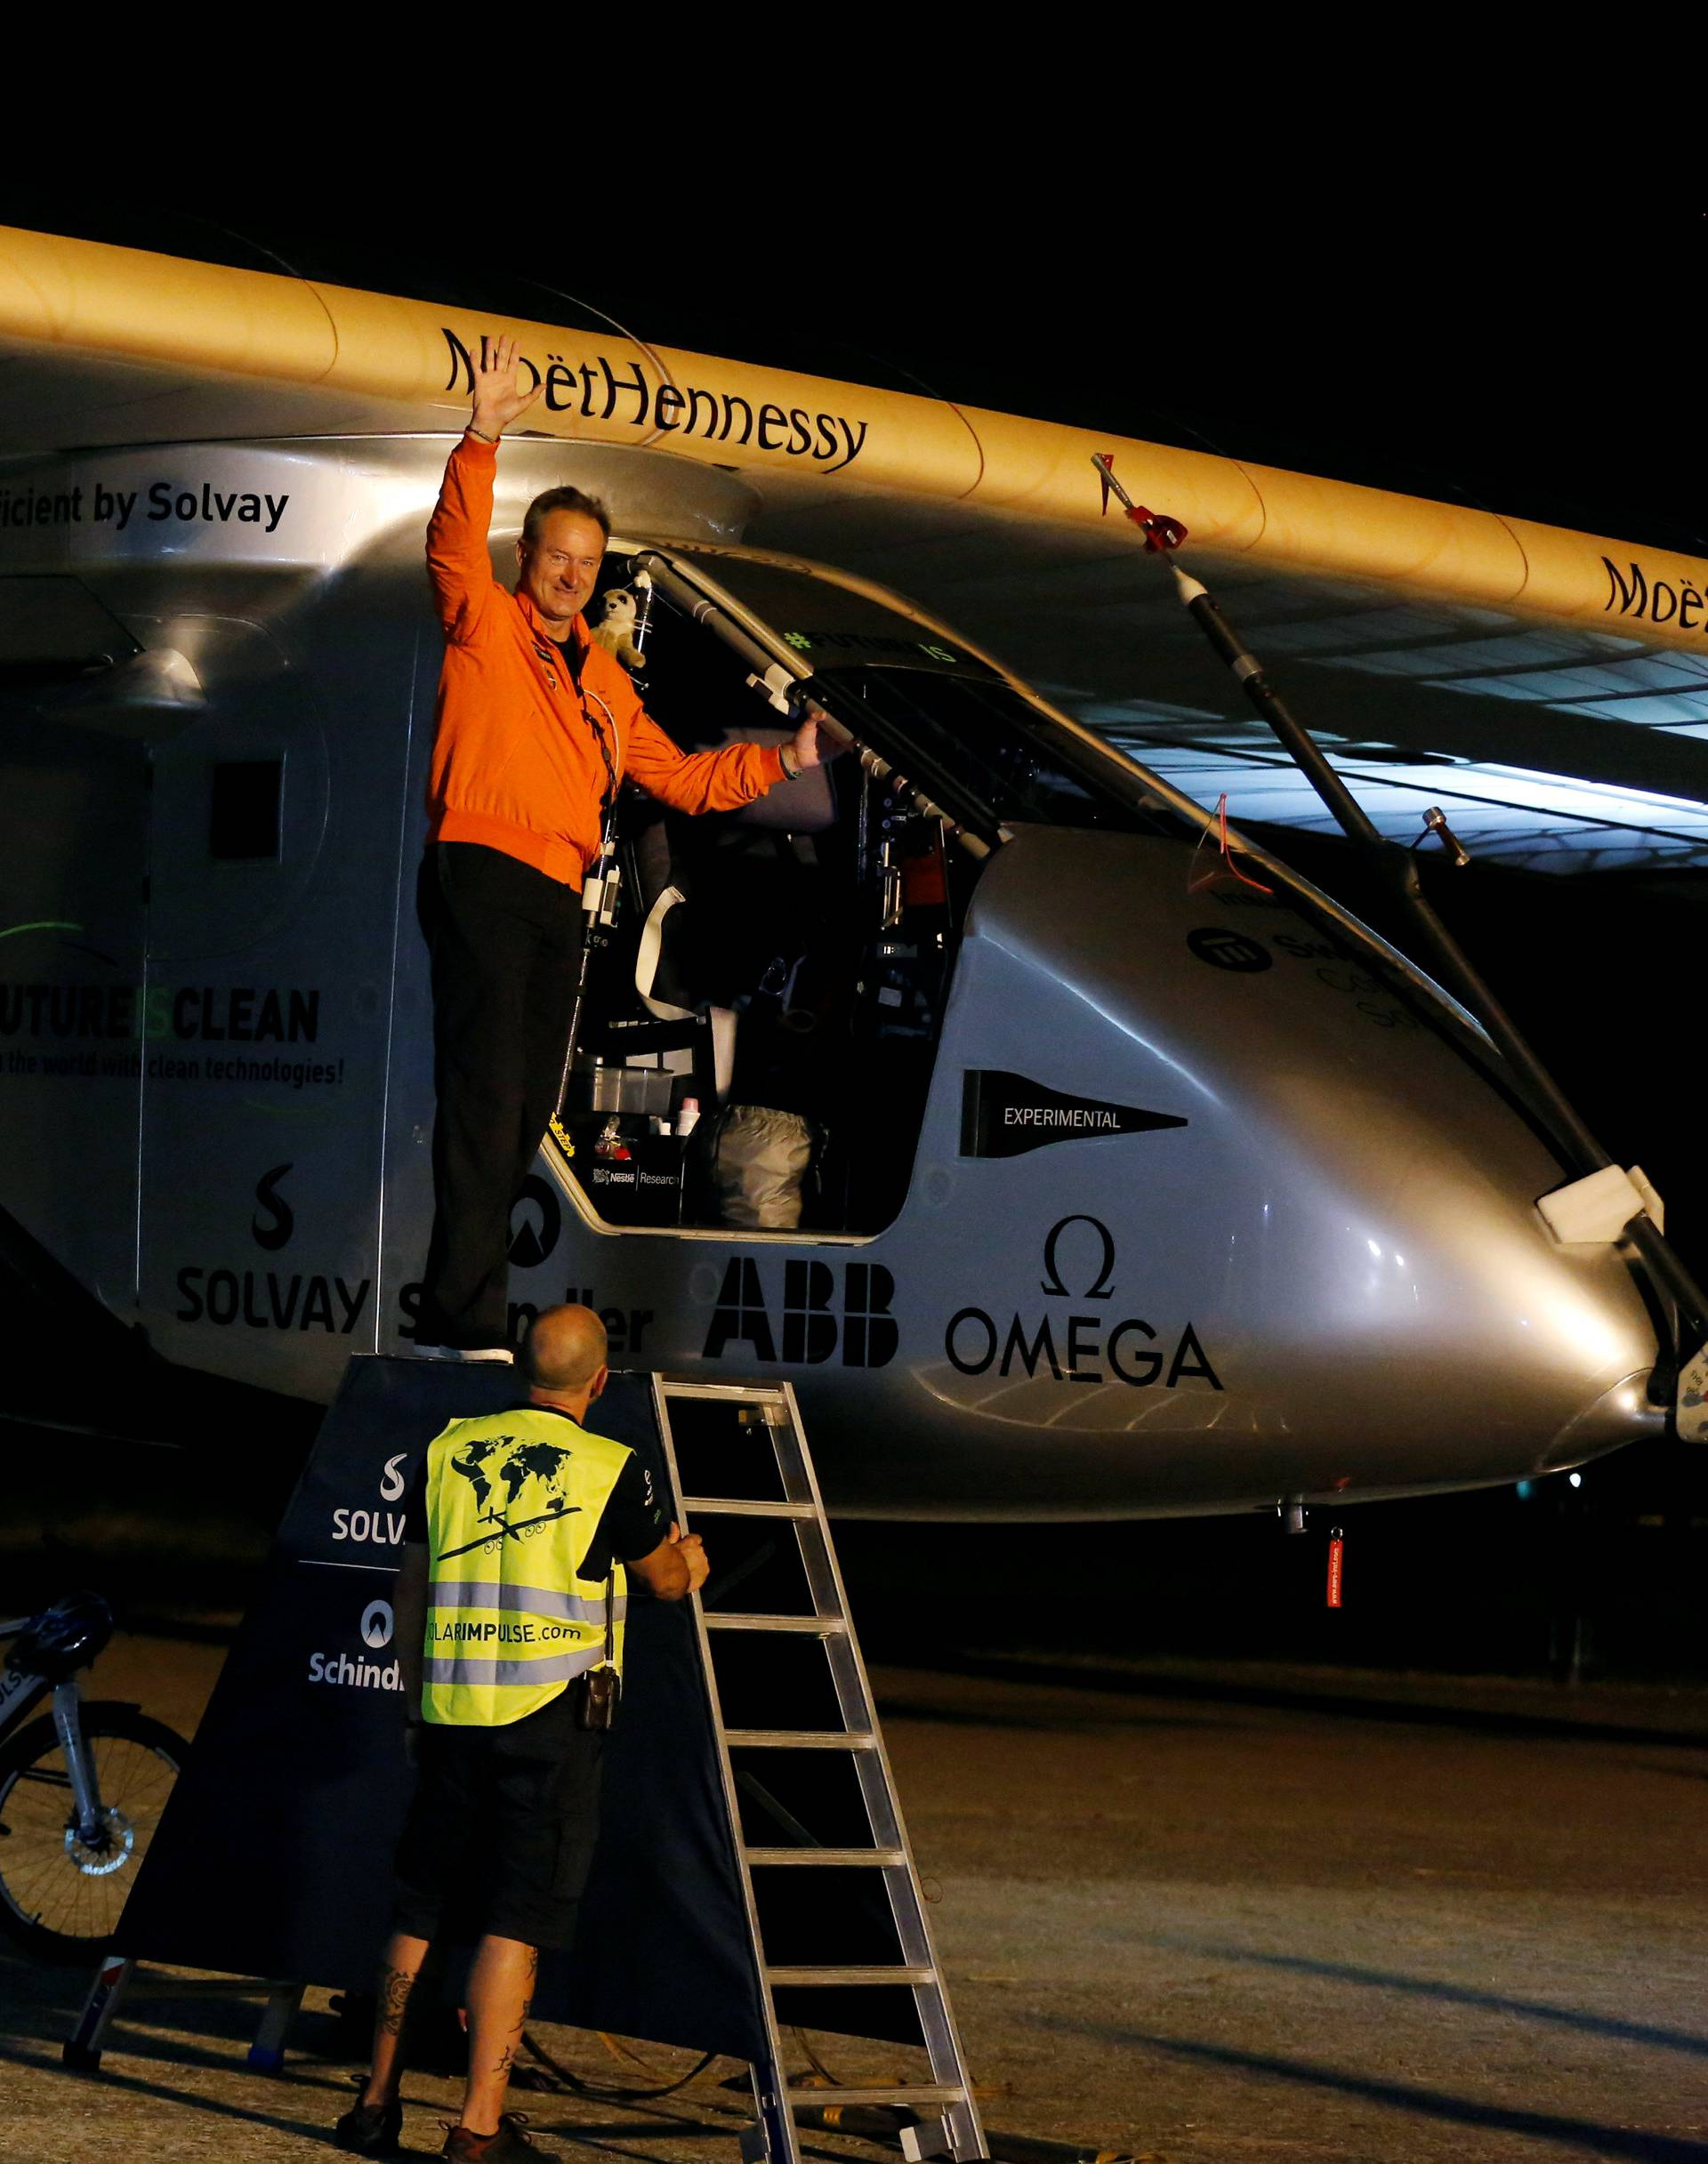 Swiss aviator of the solar-powered plane Solar Impulse 2 Borschberg waves before taking off at San Pablo airport in Seville